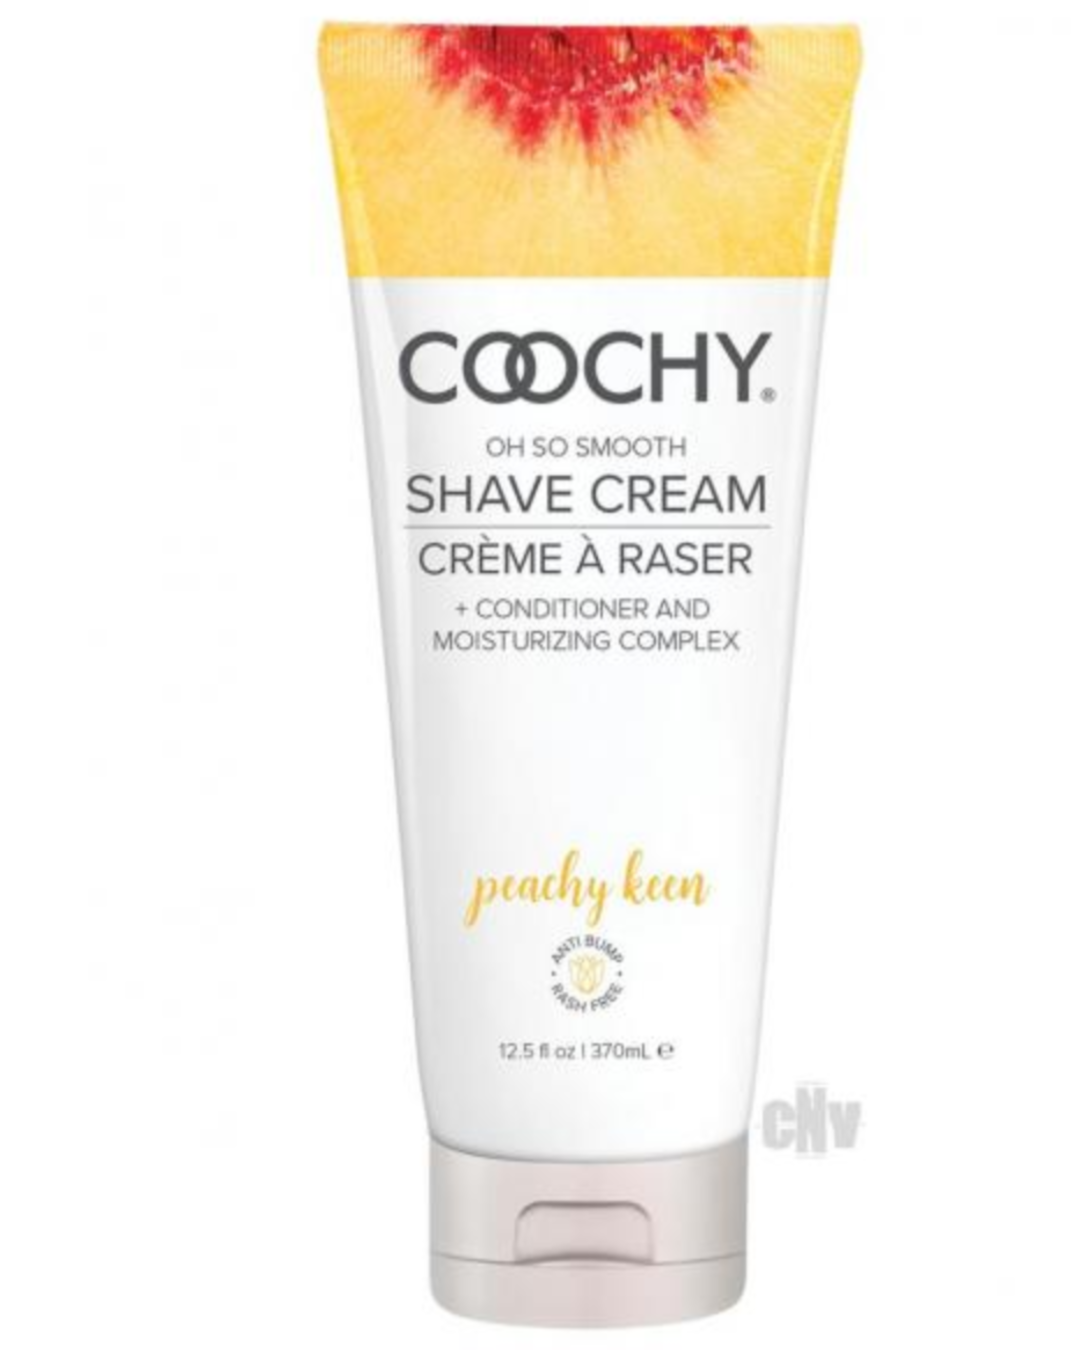 Coochy Oh So Smooth Shave Cream - Peachy Keen